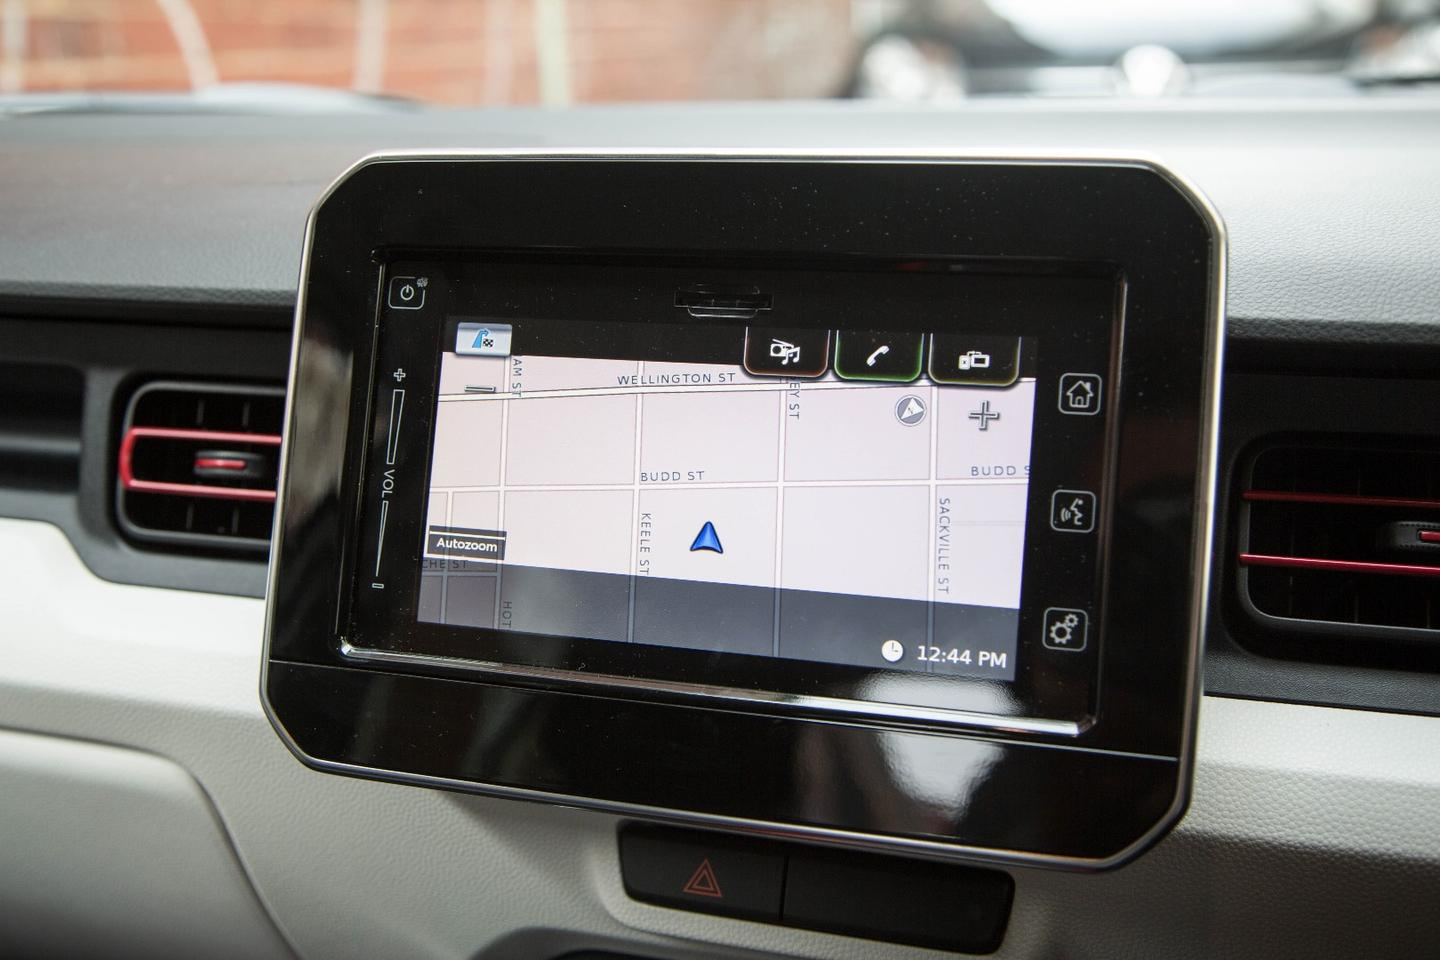 Suzuki's infotainment suite nails the basics